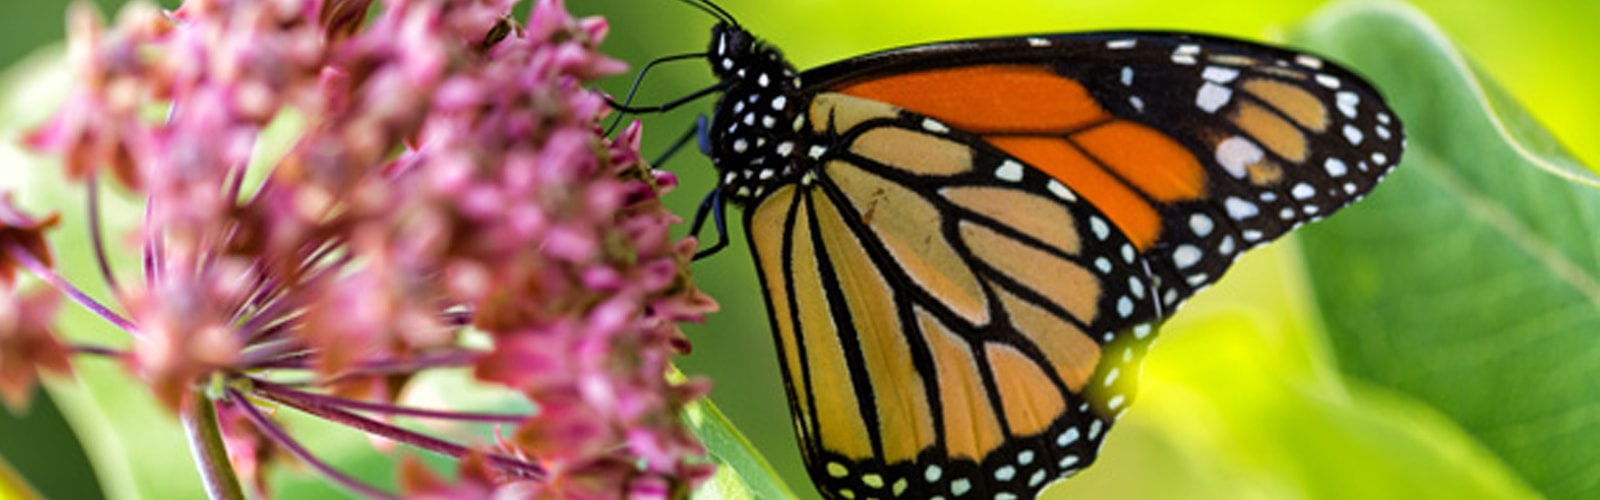 7 Ways to Help Save Butterflies and Bees